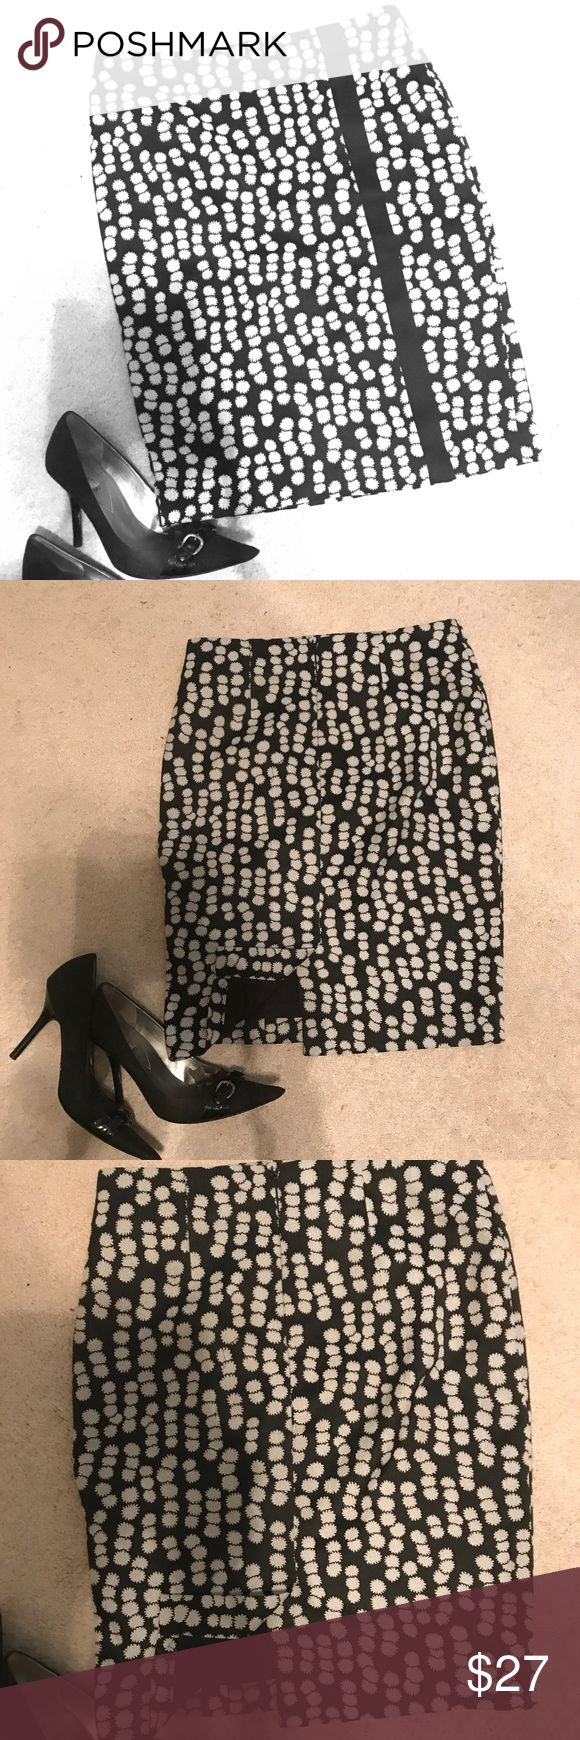 BOGOAnn Taylor Petite Pencil Skirt Lined. EUC. Buy 2 items in closet and get 1 (your lowest priced item) FREE!  Not altered.  Petite sized. Back center zipper at waistline intact. Go elegantly and professionally from day to night. Ann Taylor Skirts Pencil